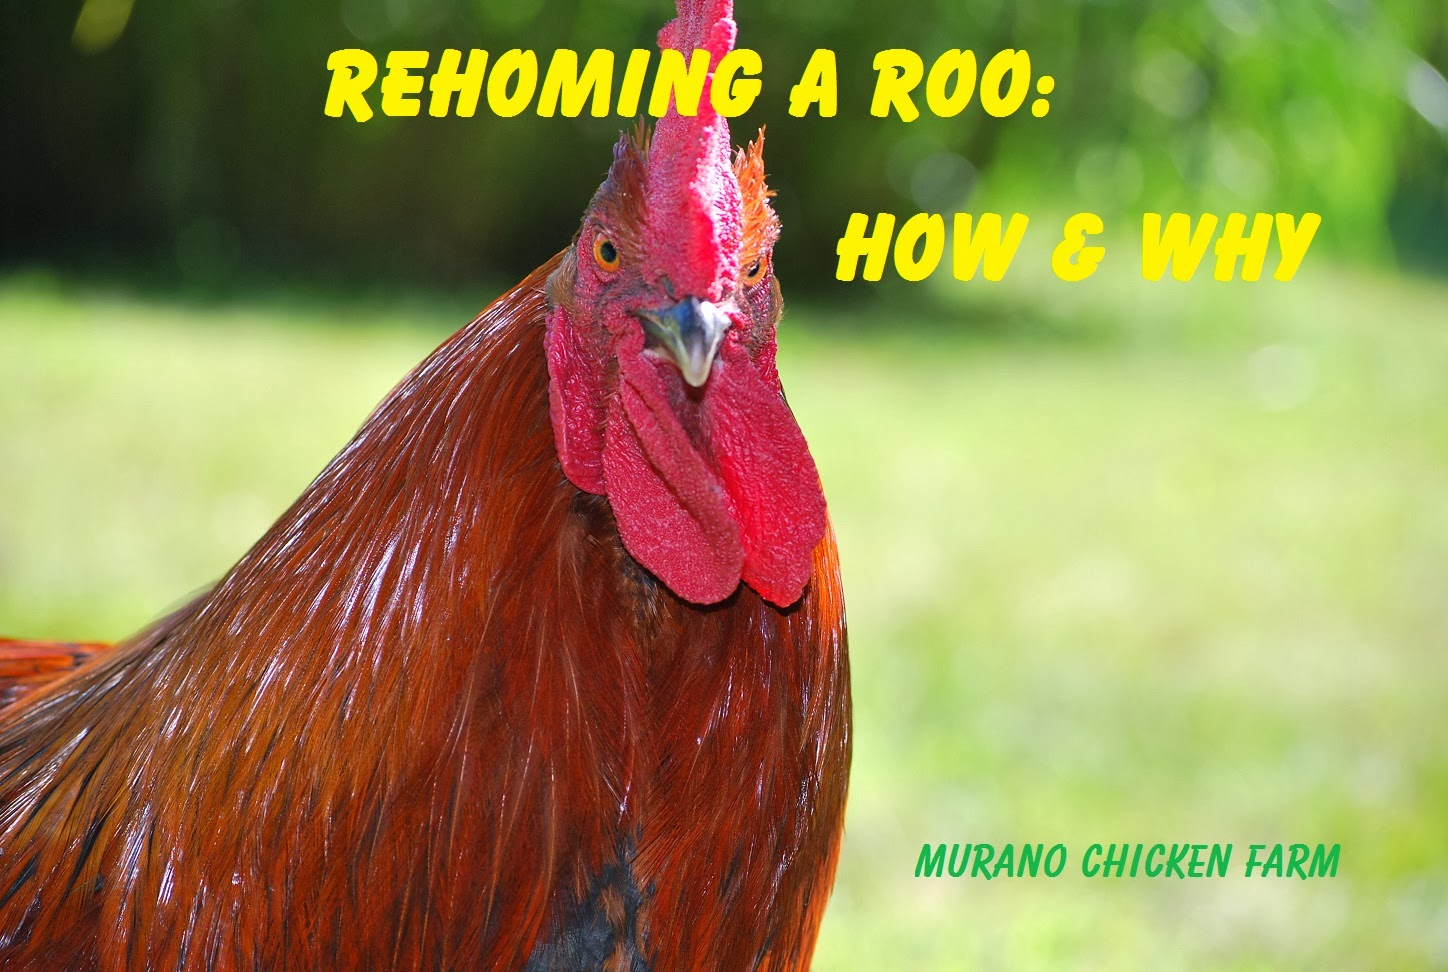 rehoming chickens